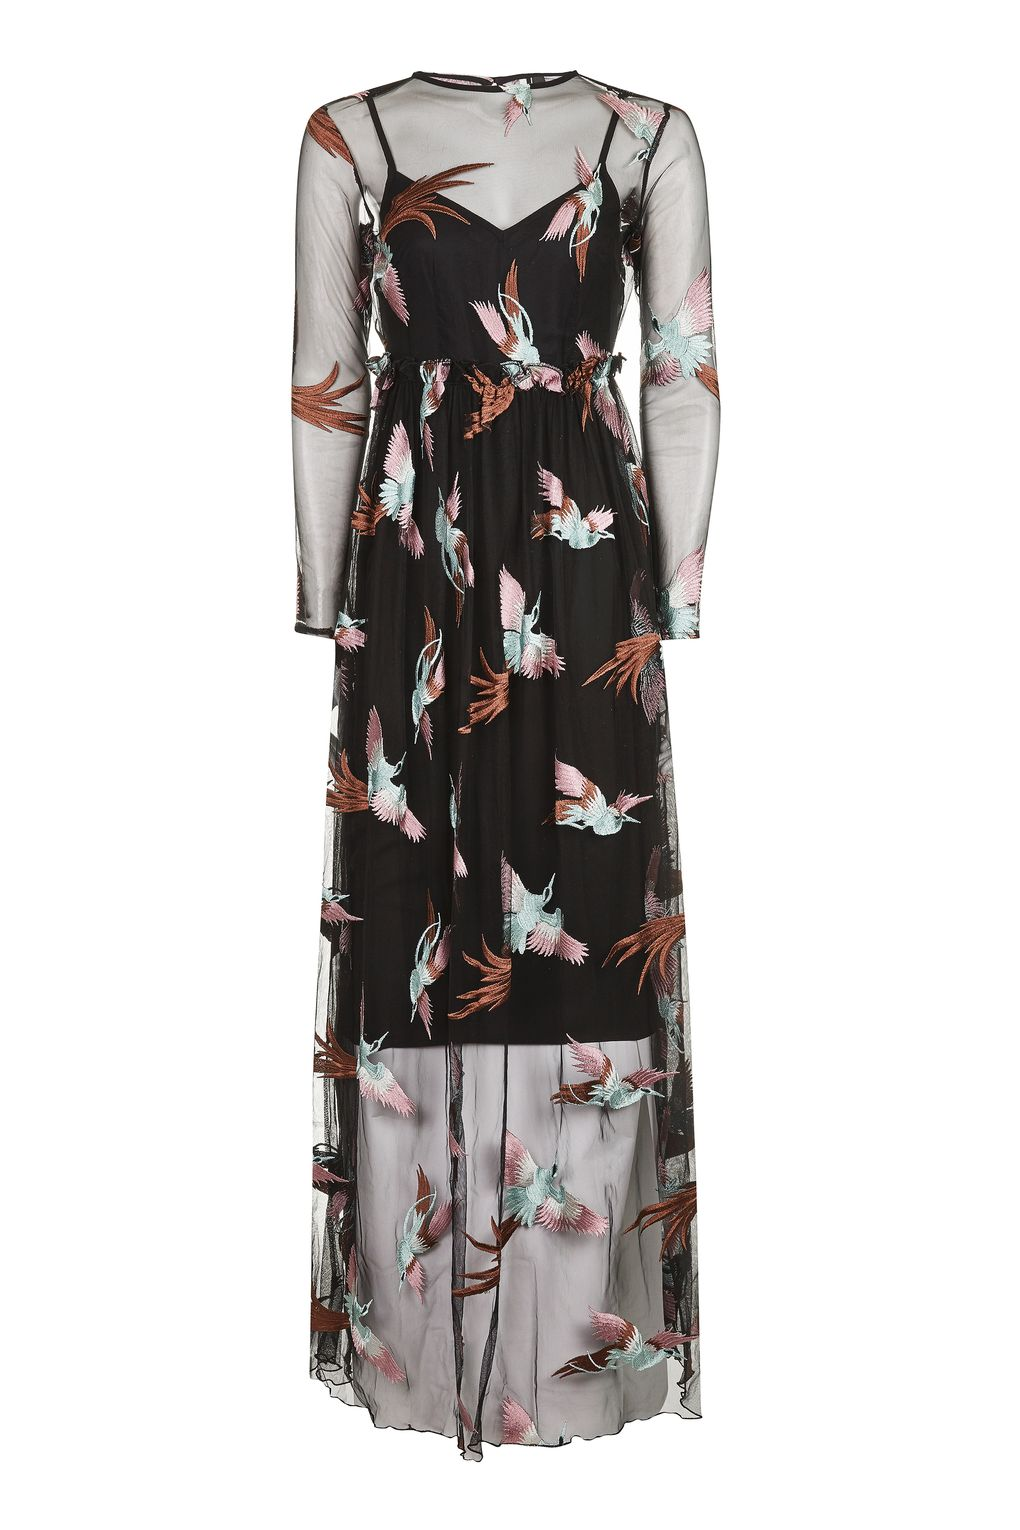 Topshop Bird dress